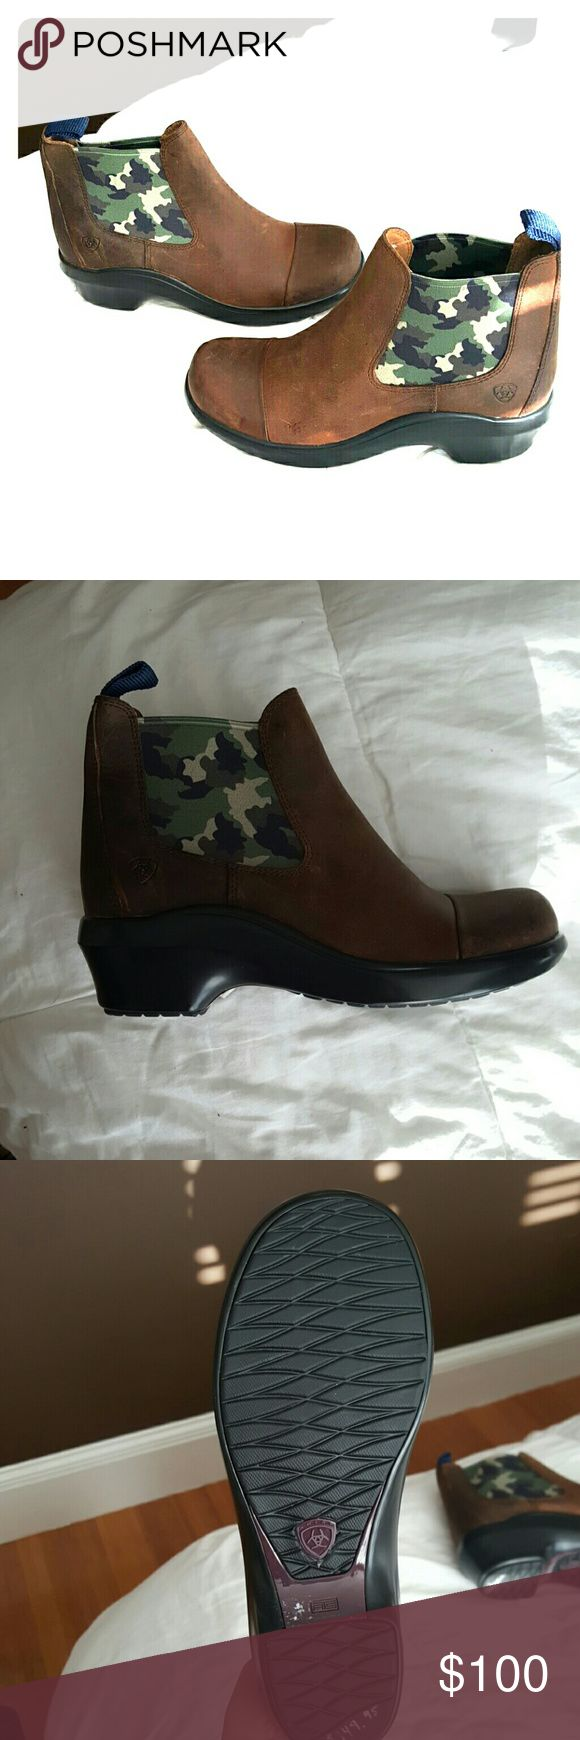 Ariat Leather Chelsea camo shoes Brand new Ariat camo Chelsea shoes. Never worn, and very cool! Ariat Shoes